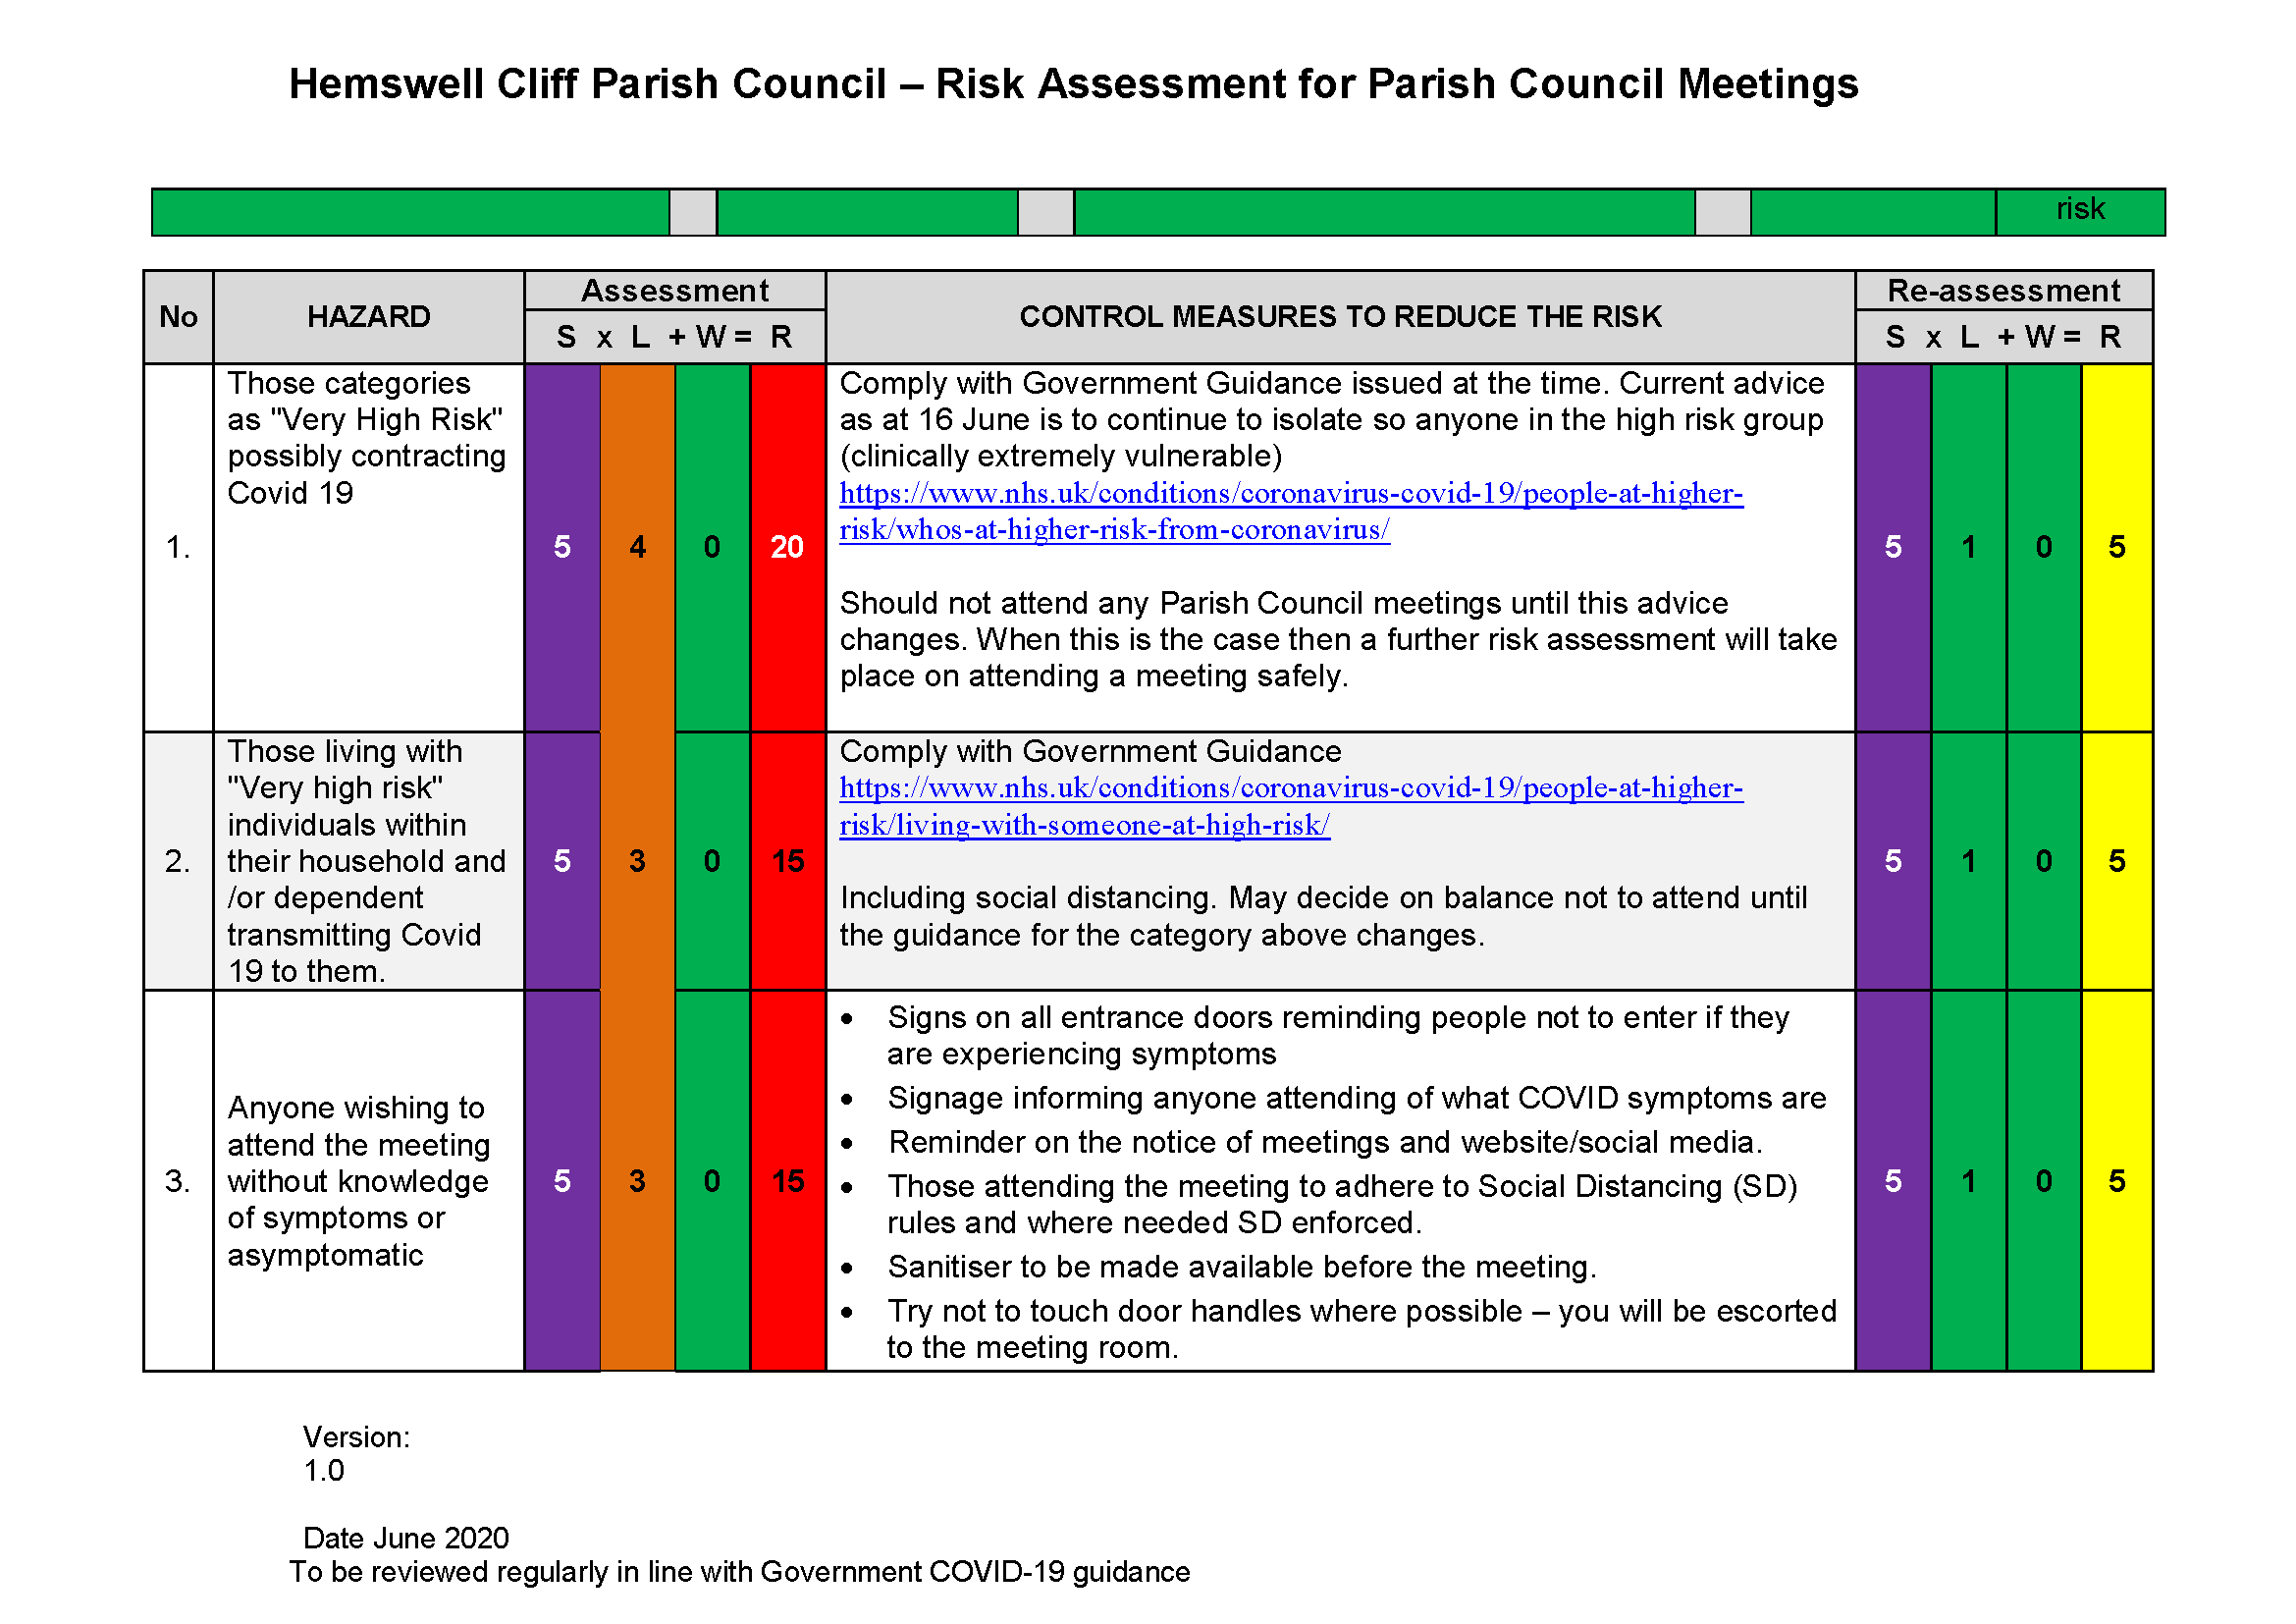 HCPC_risk_assessment_meetings_Page_2.png